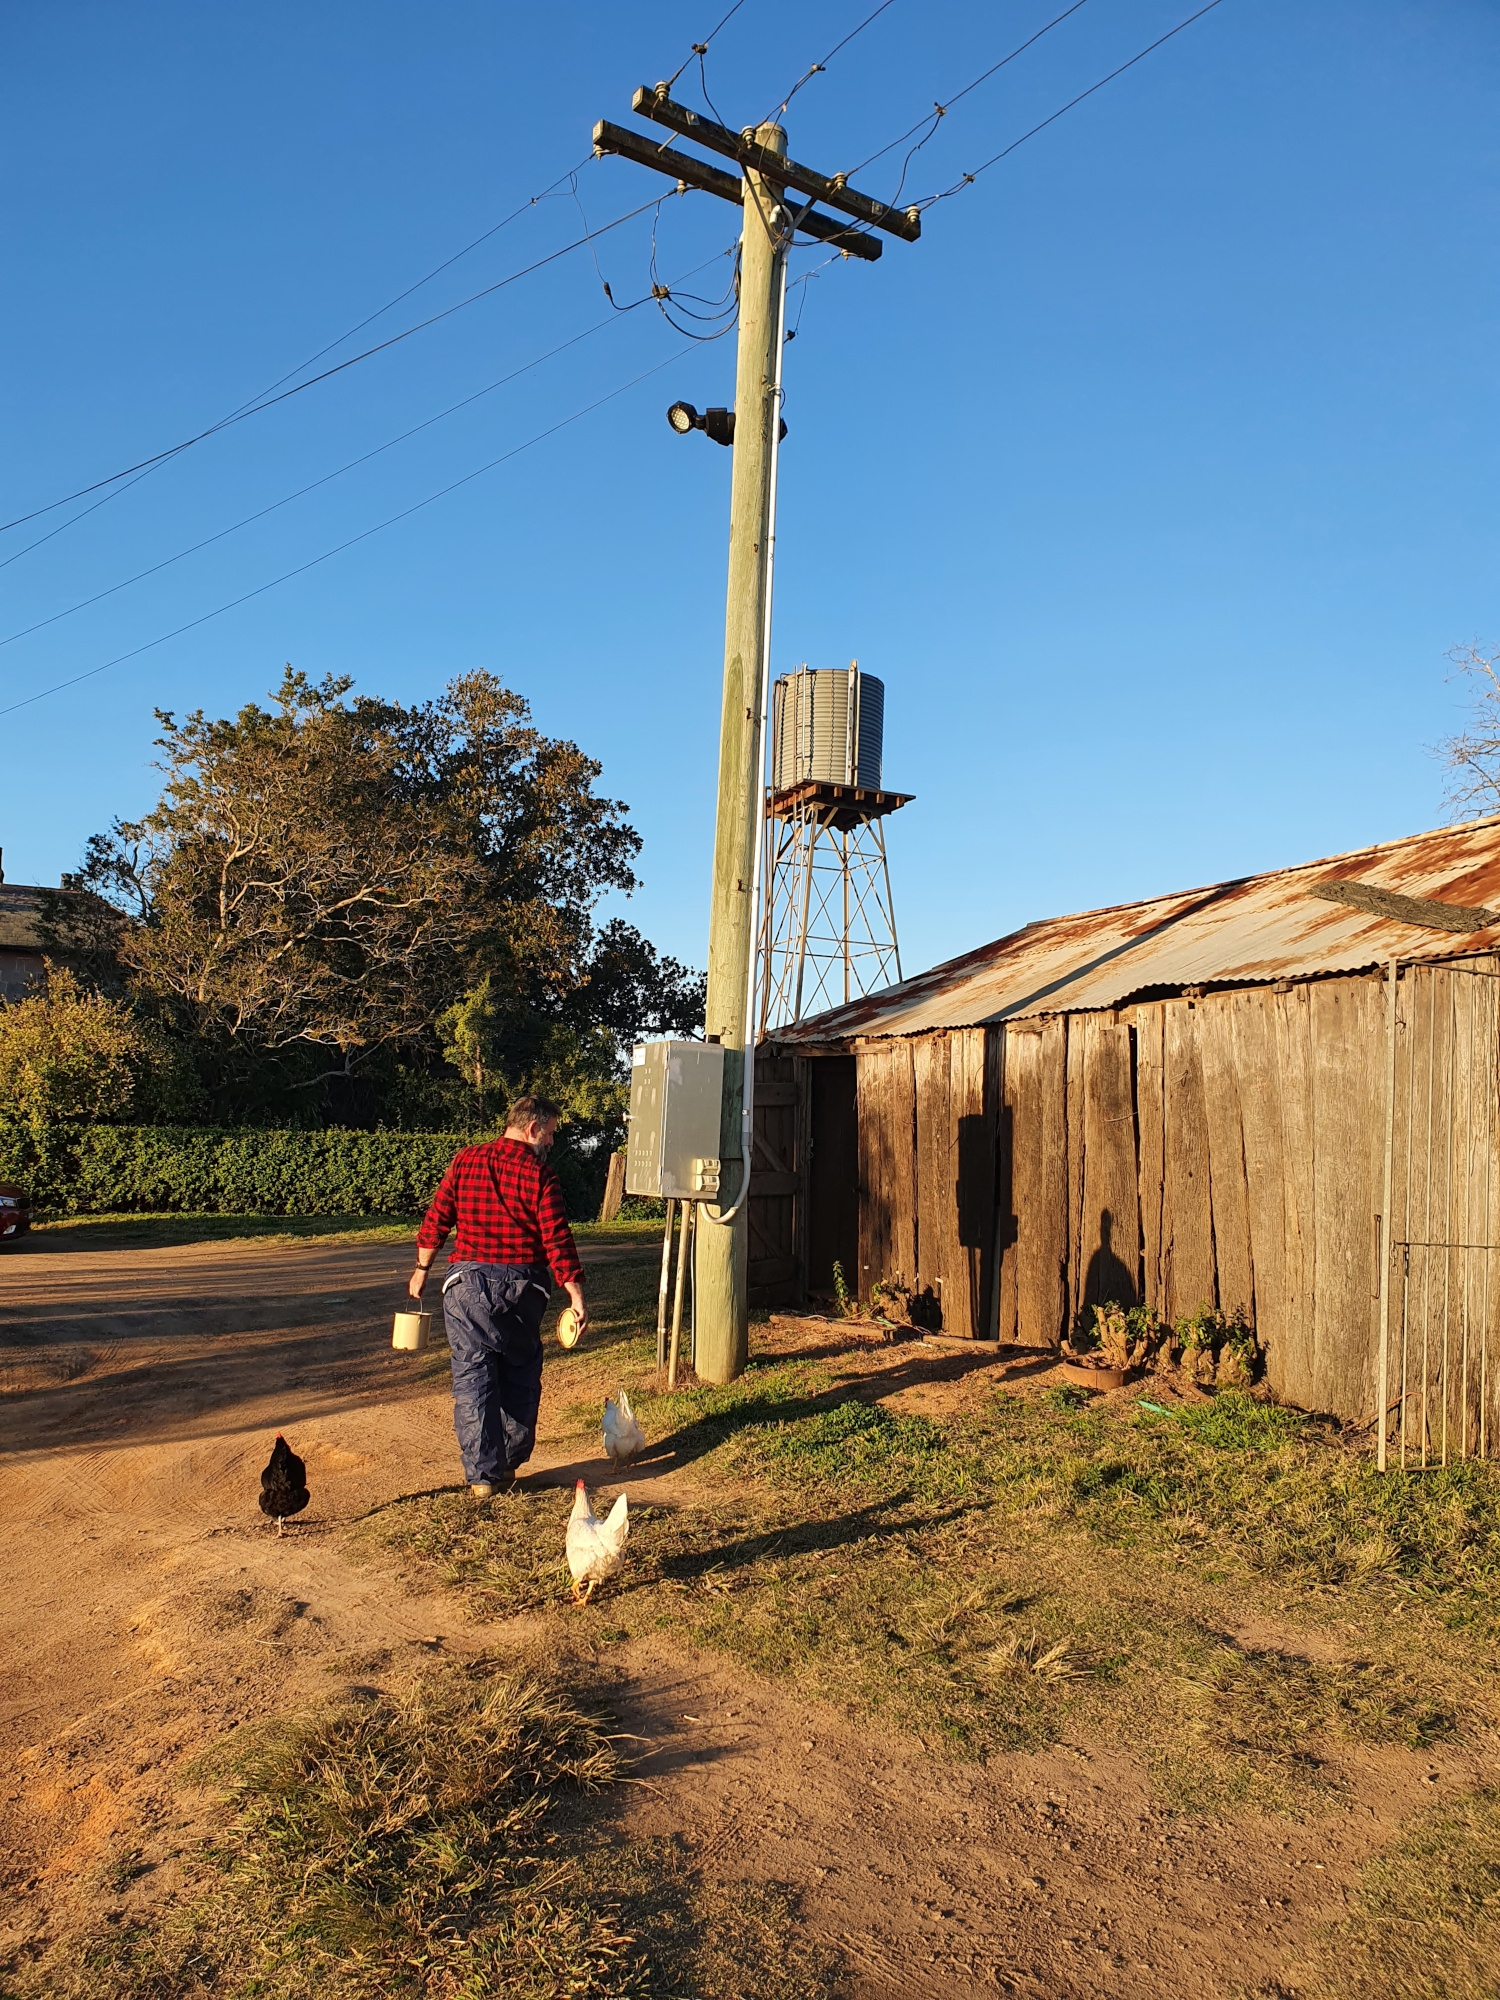 Man wearing half hazmat suit and red checked shirt leading chickens around side of rustic shed.